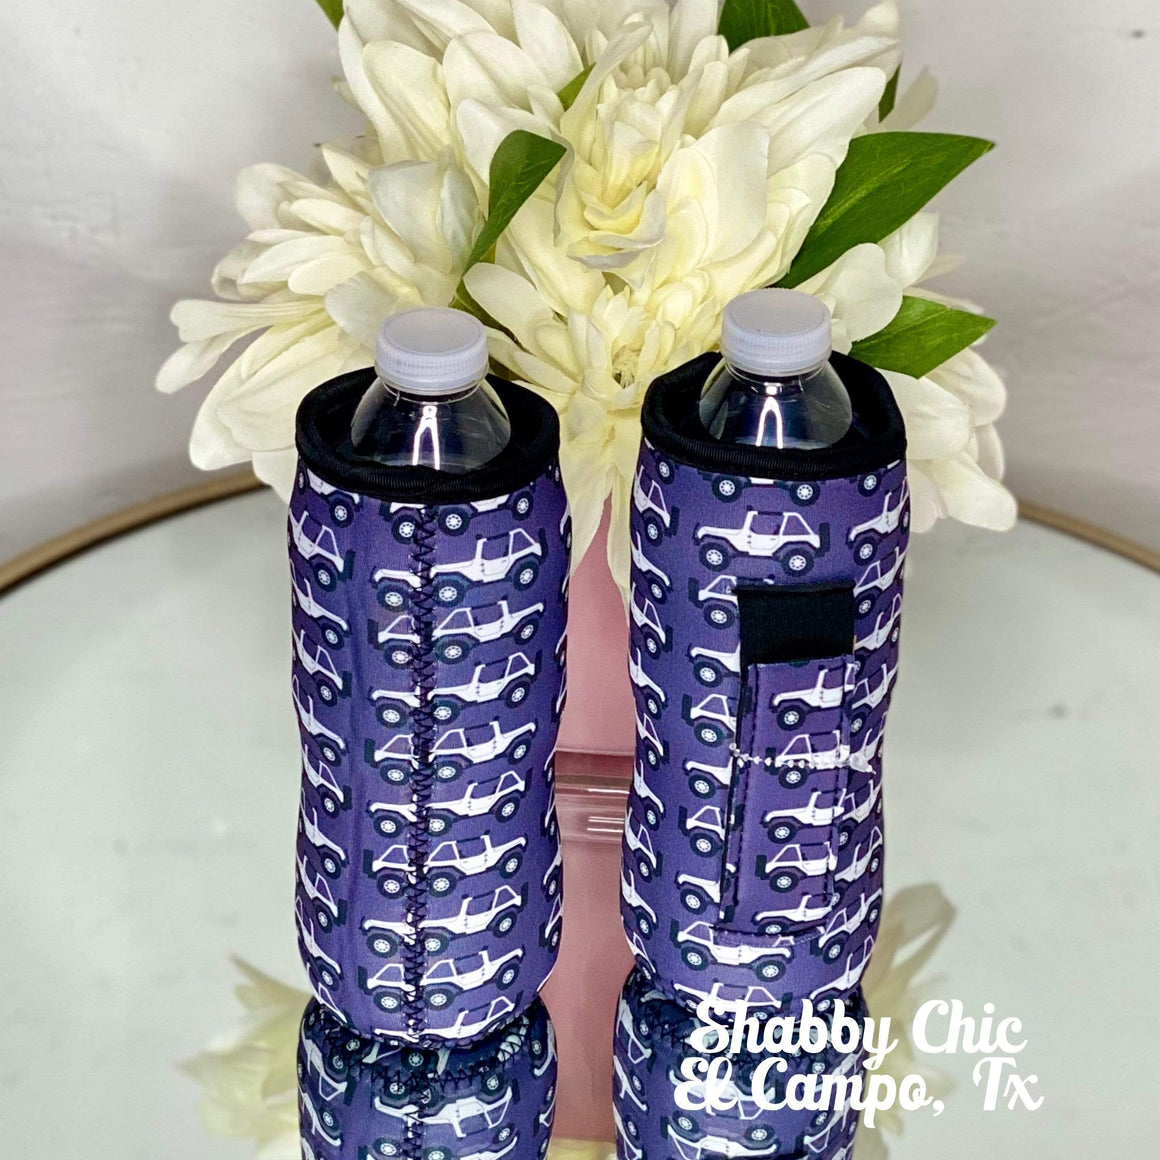 Jeep Water Bottle Koozie Shabby Chic Boutique and Tanning Salon